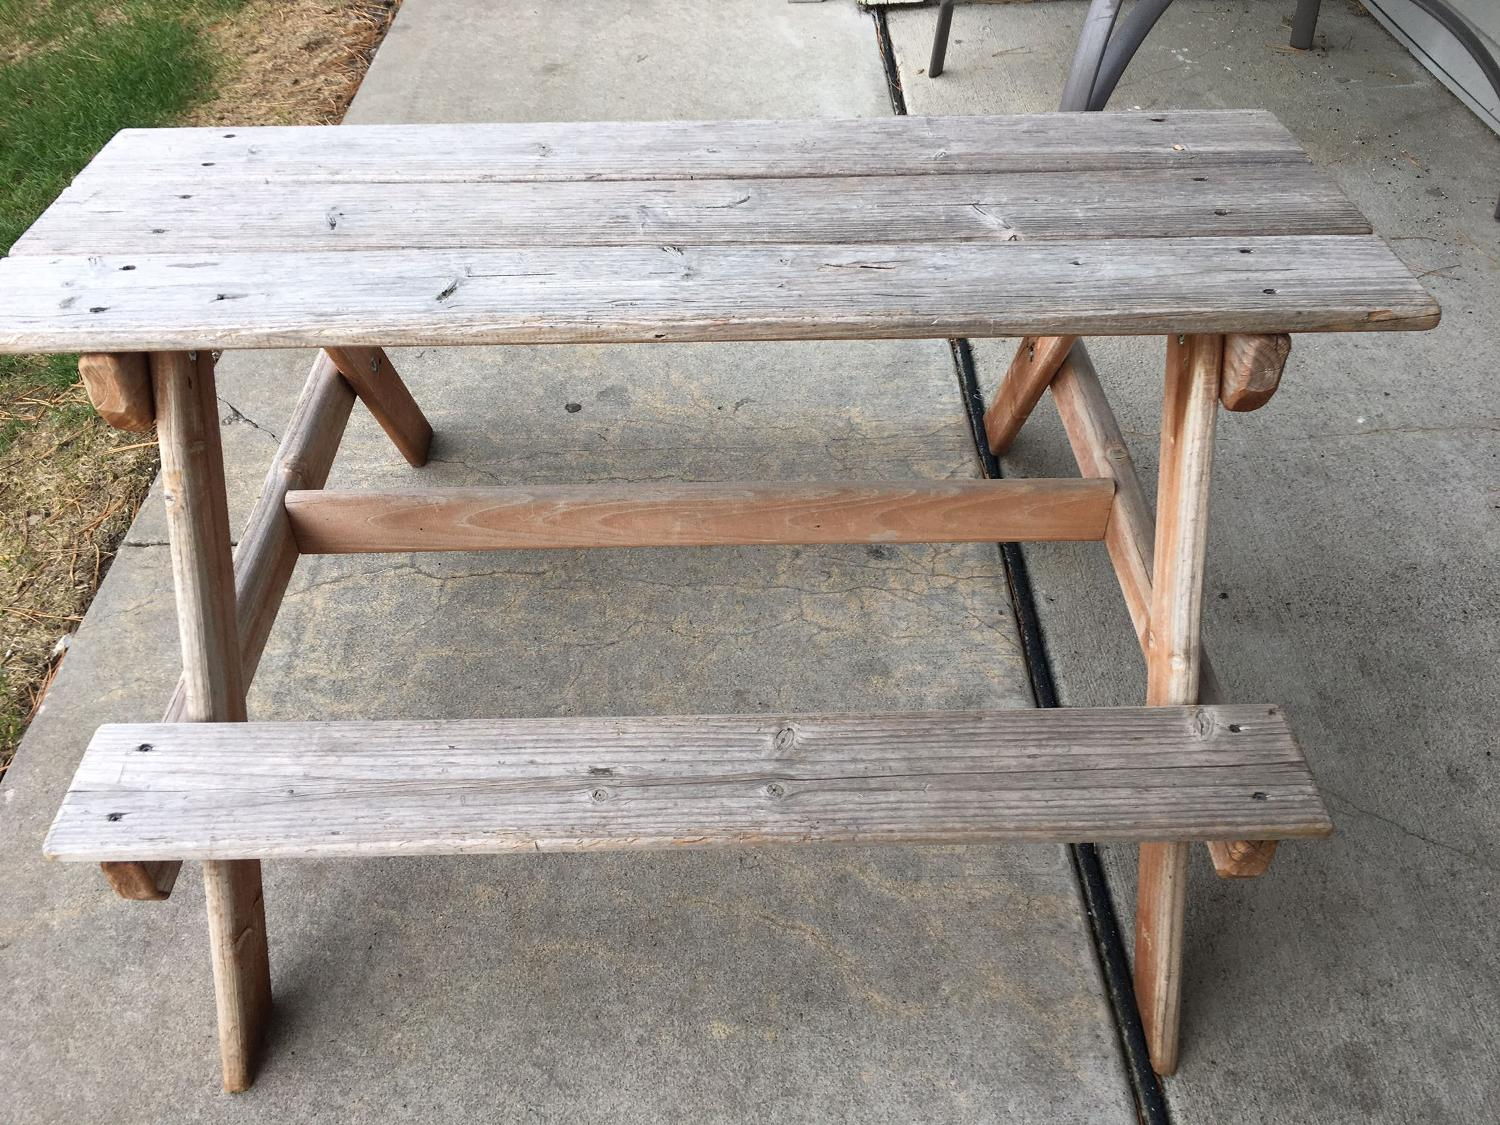 Find More Kids Picnic Table For Sale At Up To 90 Off Overland Park Ks